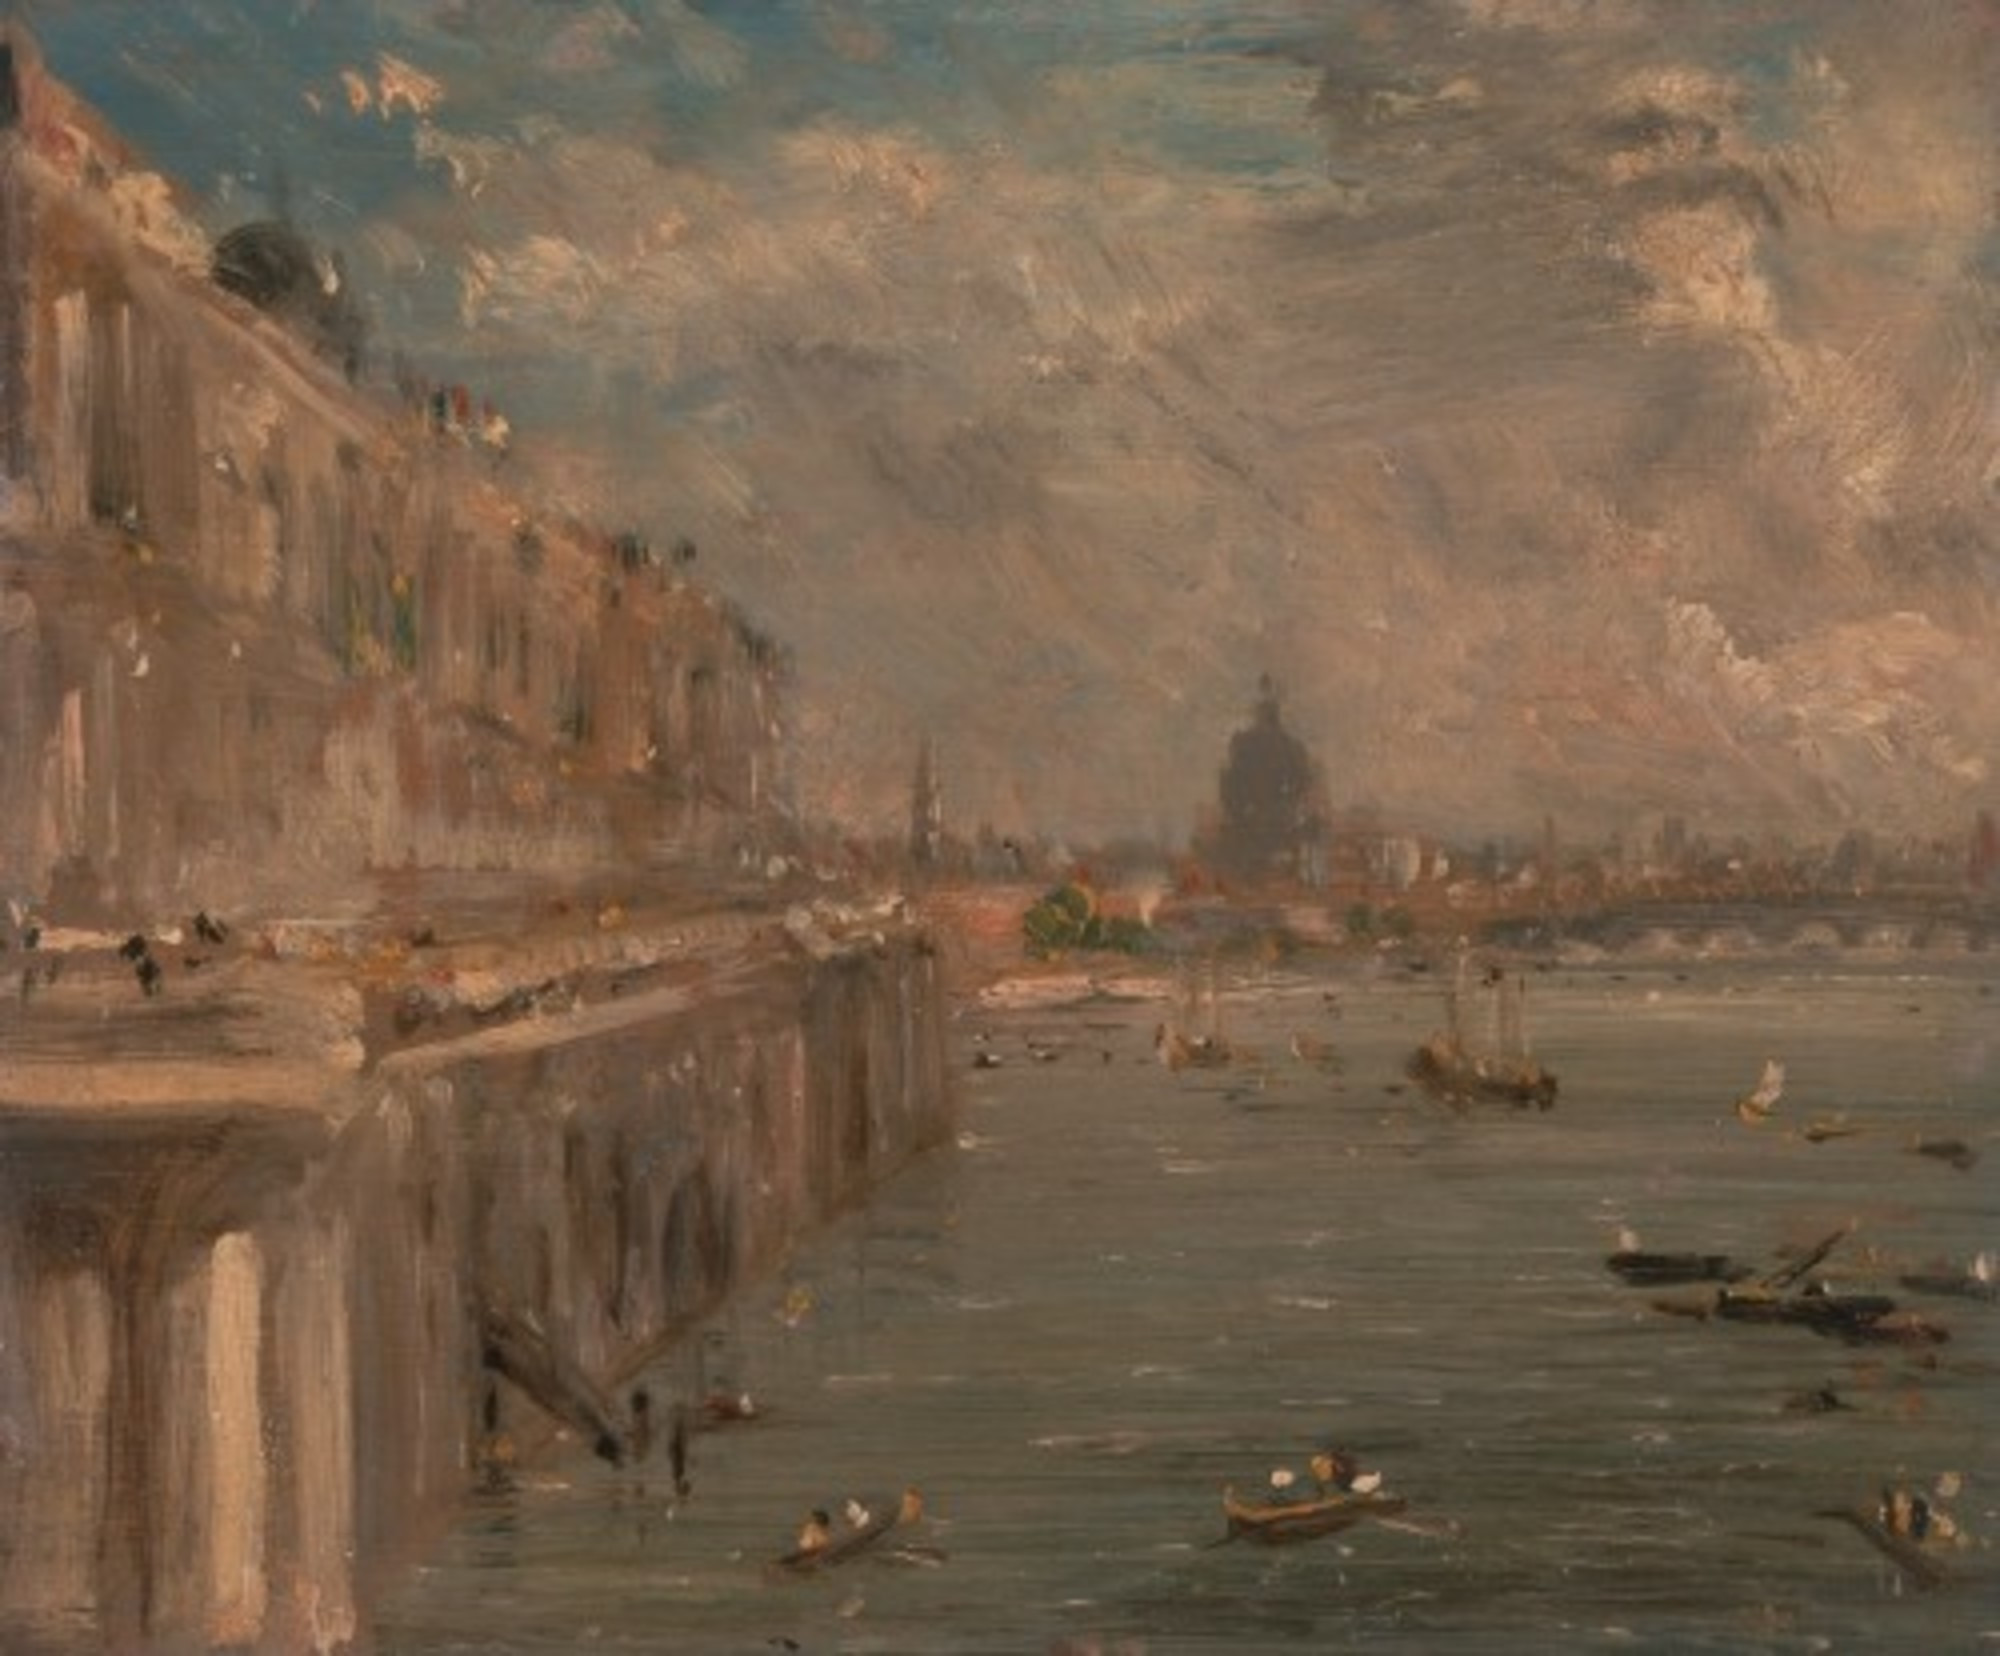 John-Constable---Somerset-House-Terrace-from-Waterloo-Bridge---Google-Art-Project.jpg